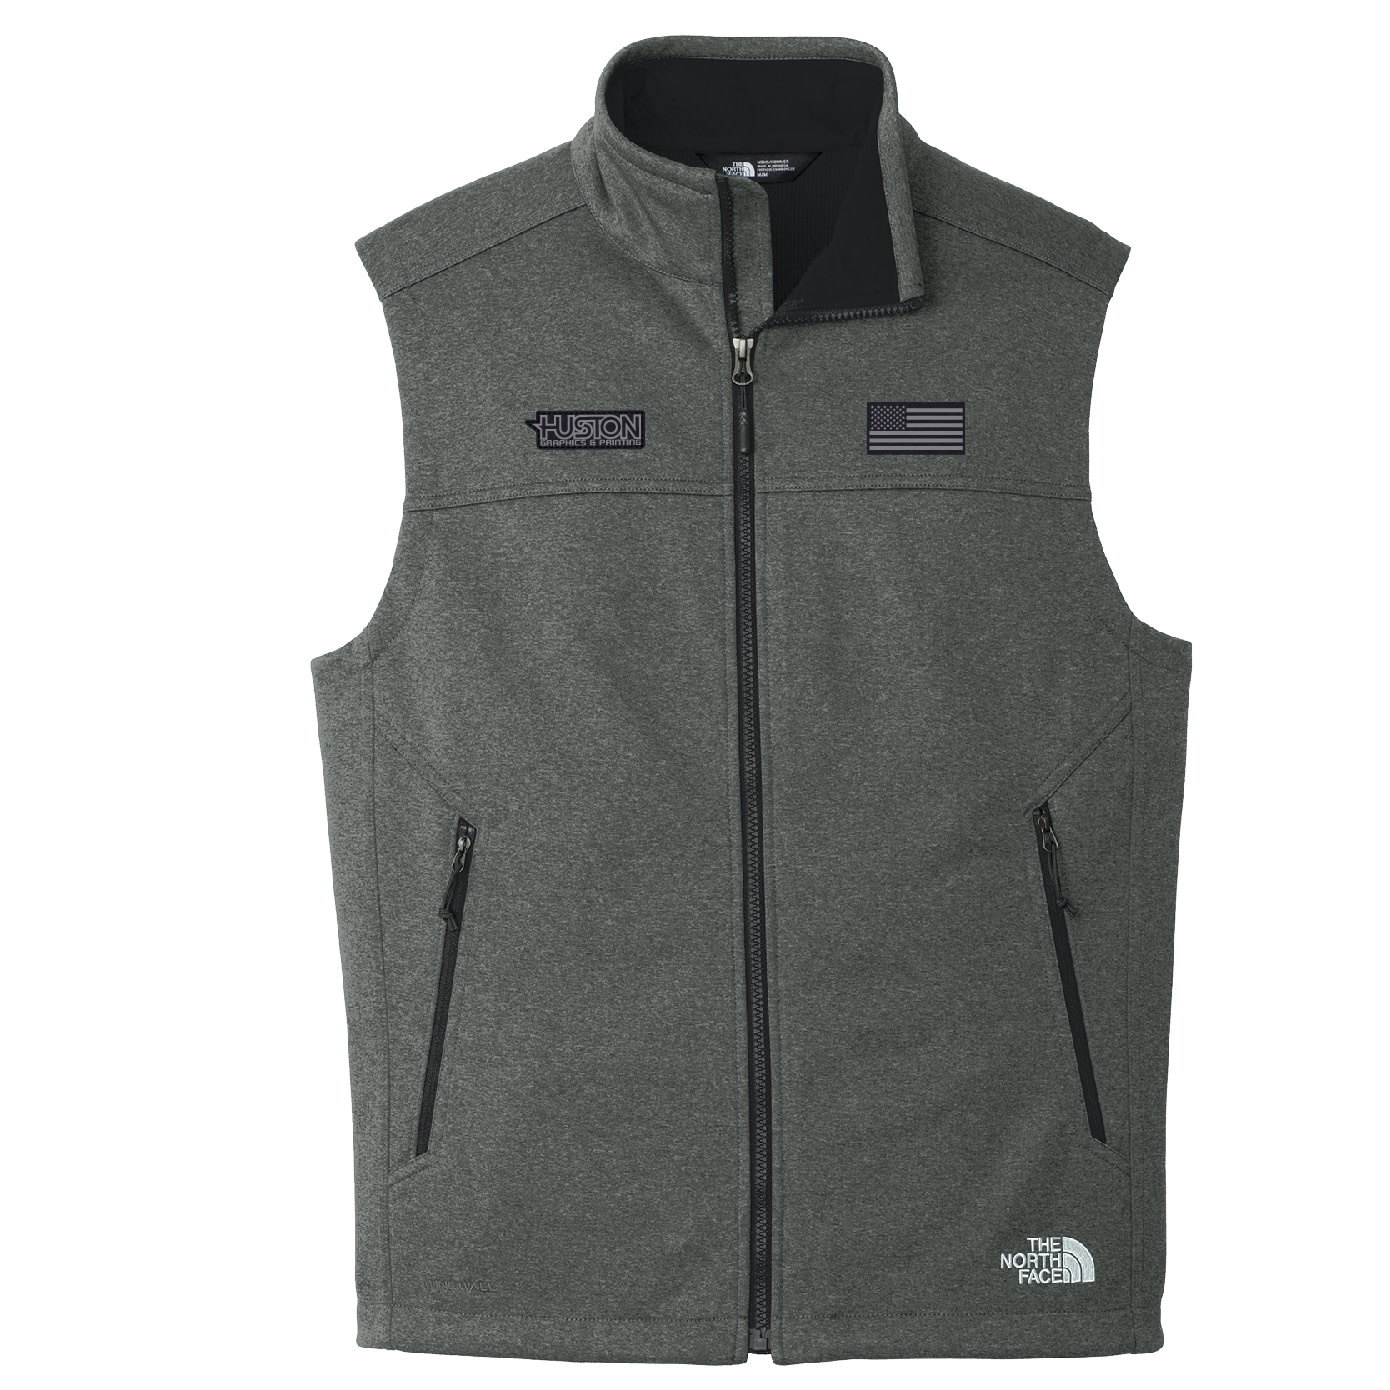 The North Face The North Face Ridgeline Soft Shell Vest (Dark Grey Heather)